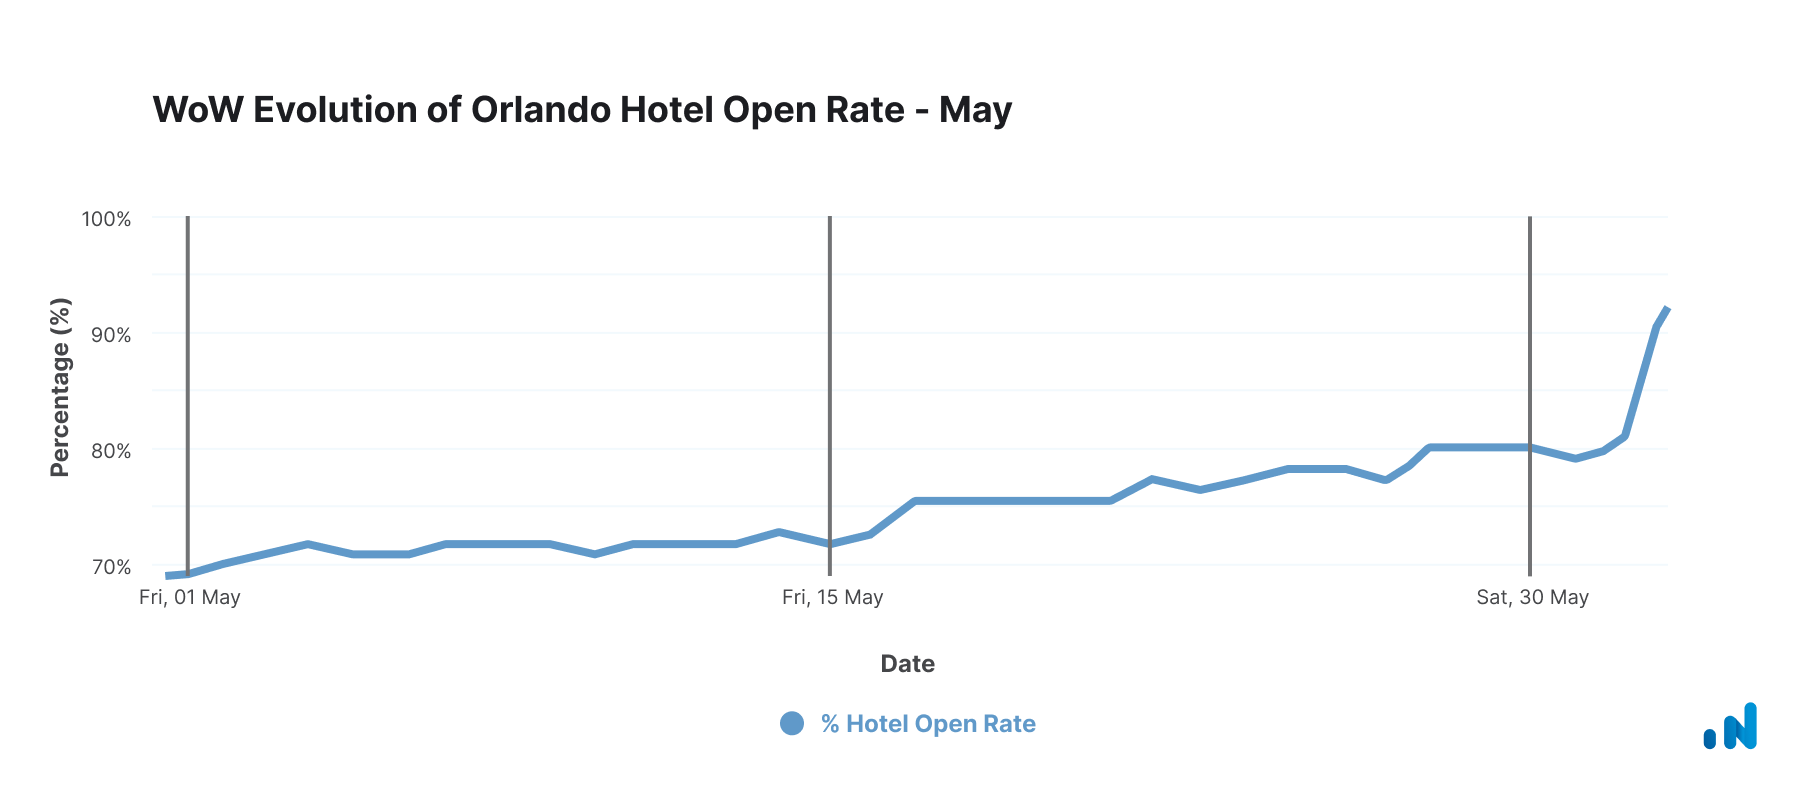 WoW Evolution of Orlando Hotel Open Rate - May